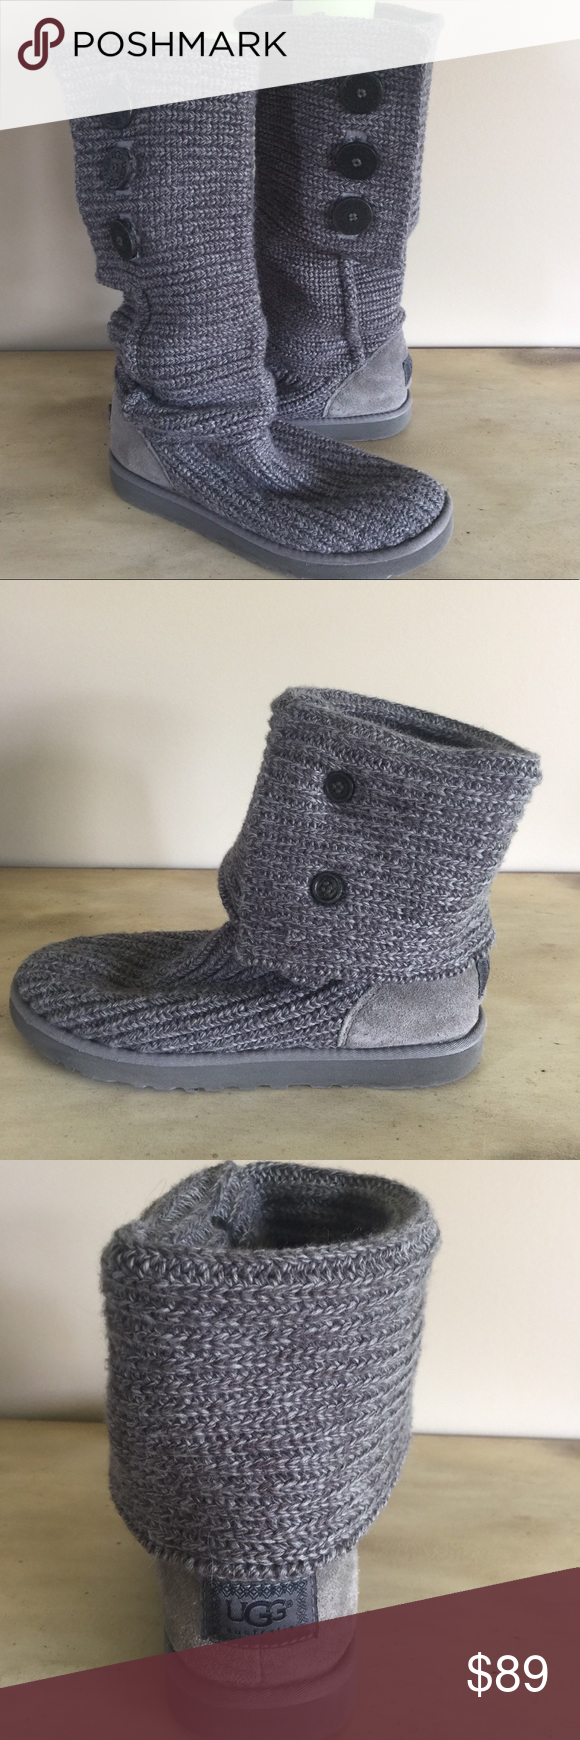 85339782aec 💕UGG Cardy Knit Boots Gray Tall or Fold Excellent condition UGG ...